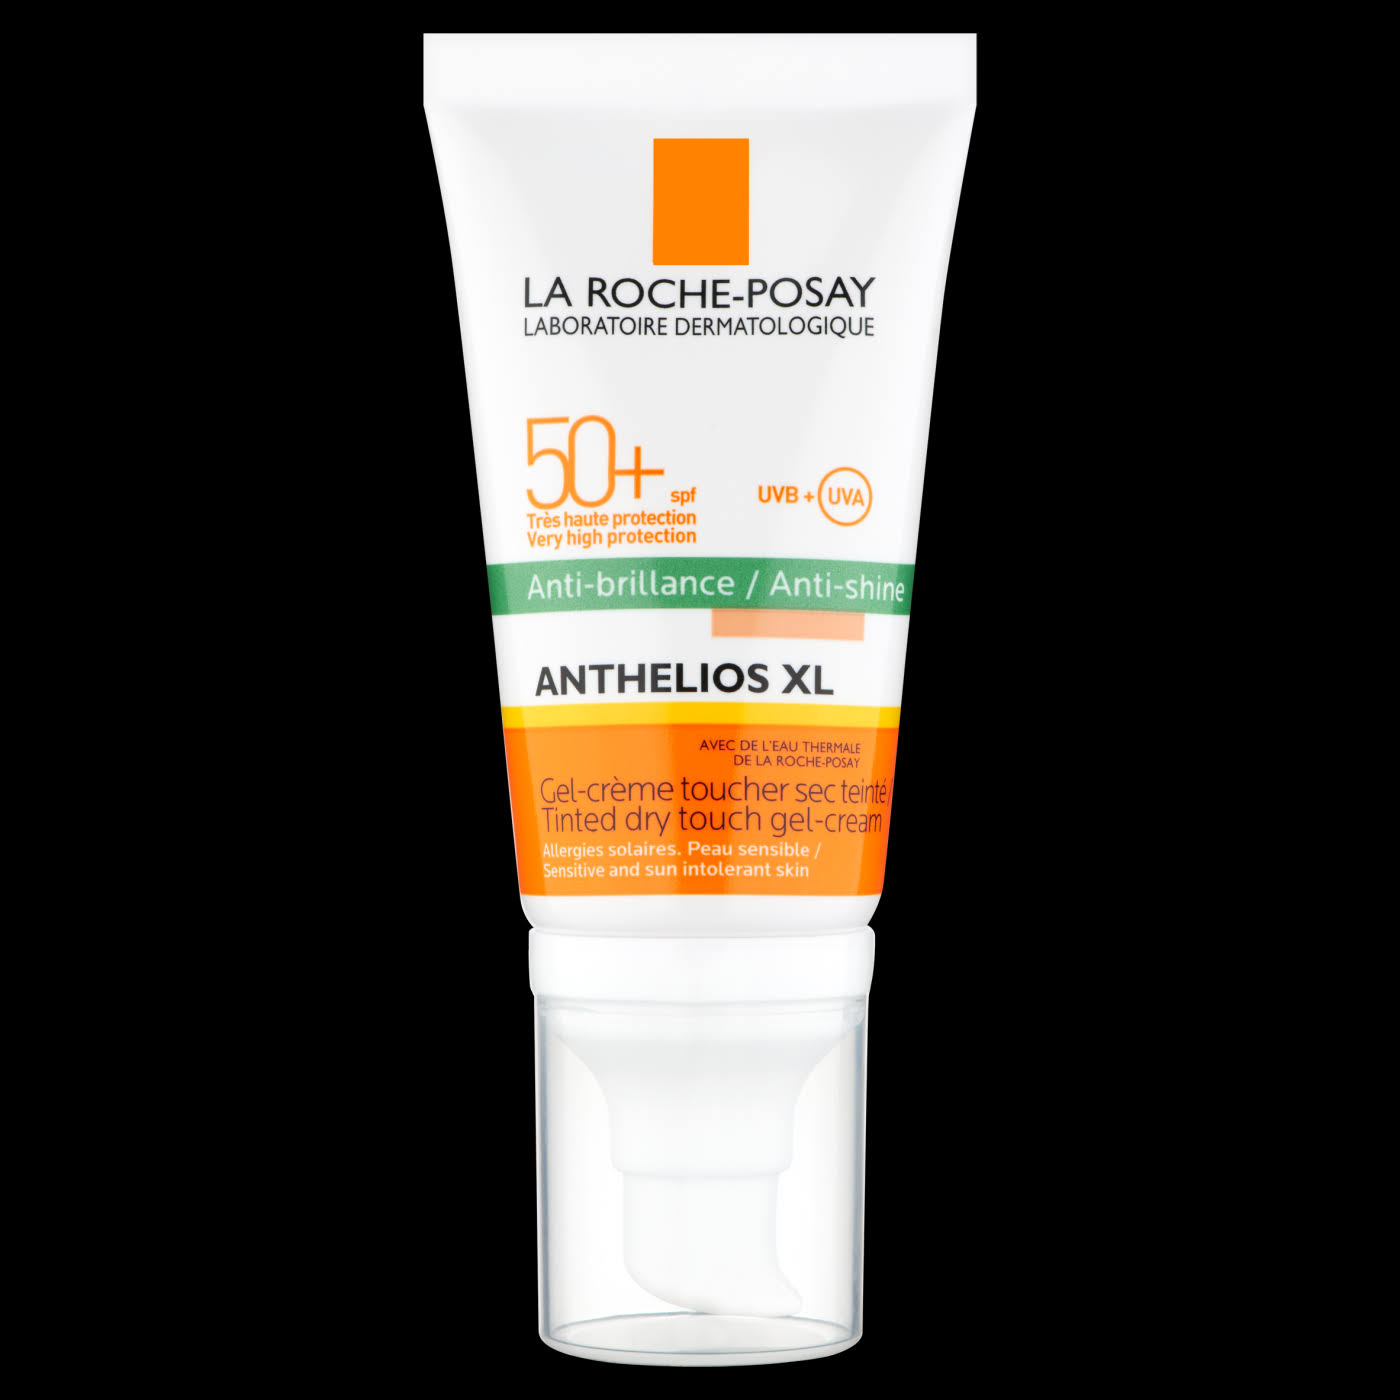 La Roche-Posay Anthelios Anti Shine SPF 50 Tinted - 50ml